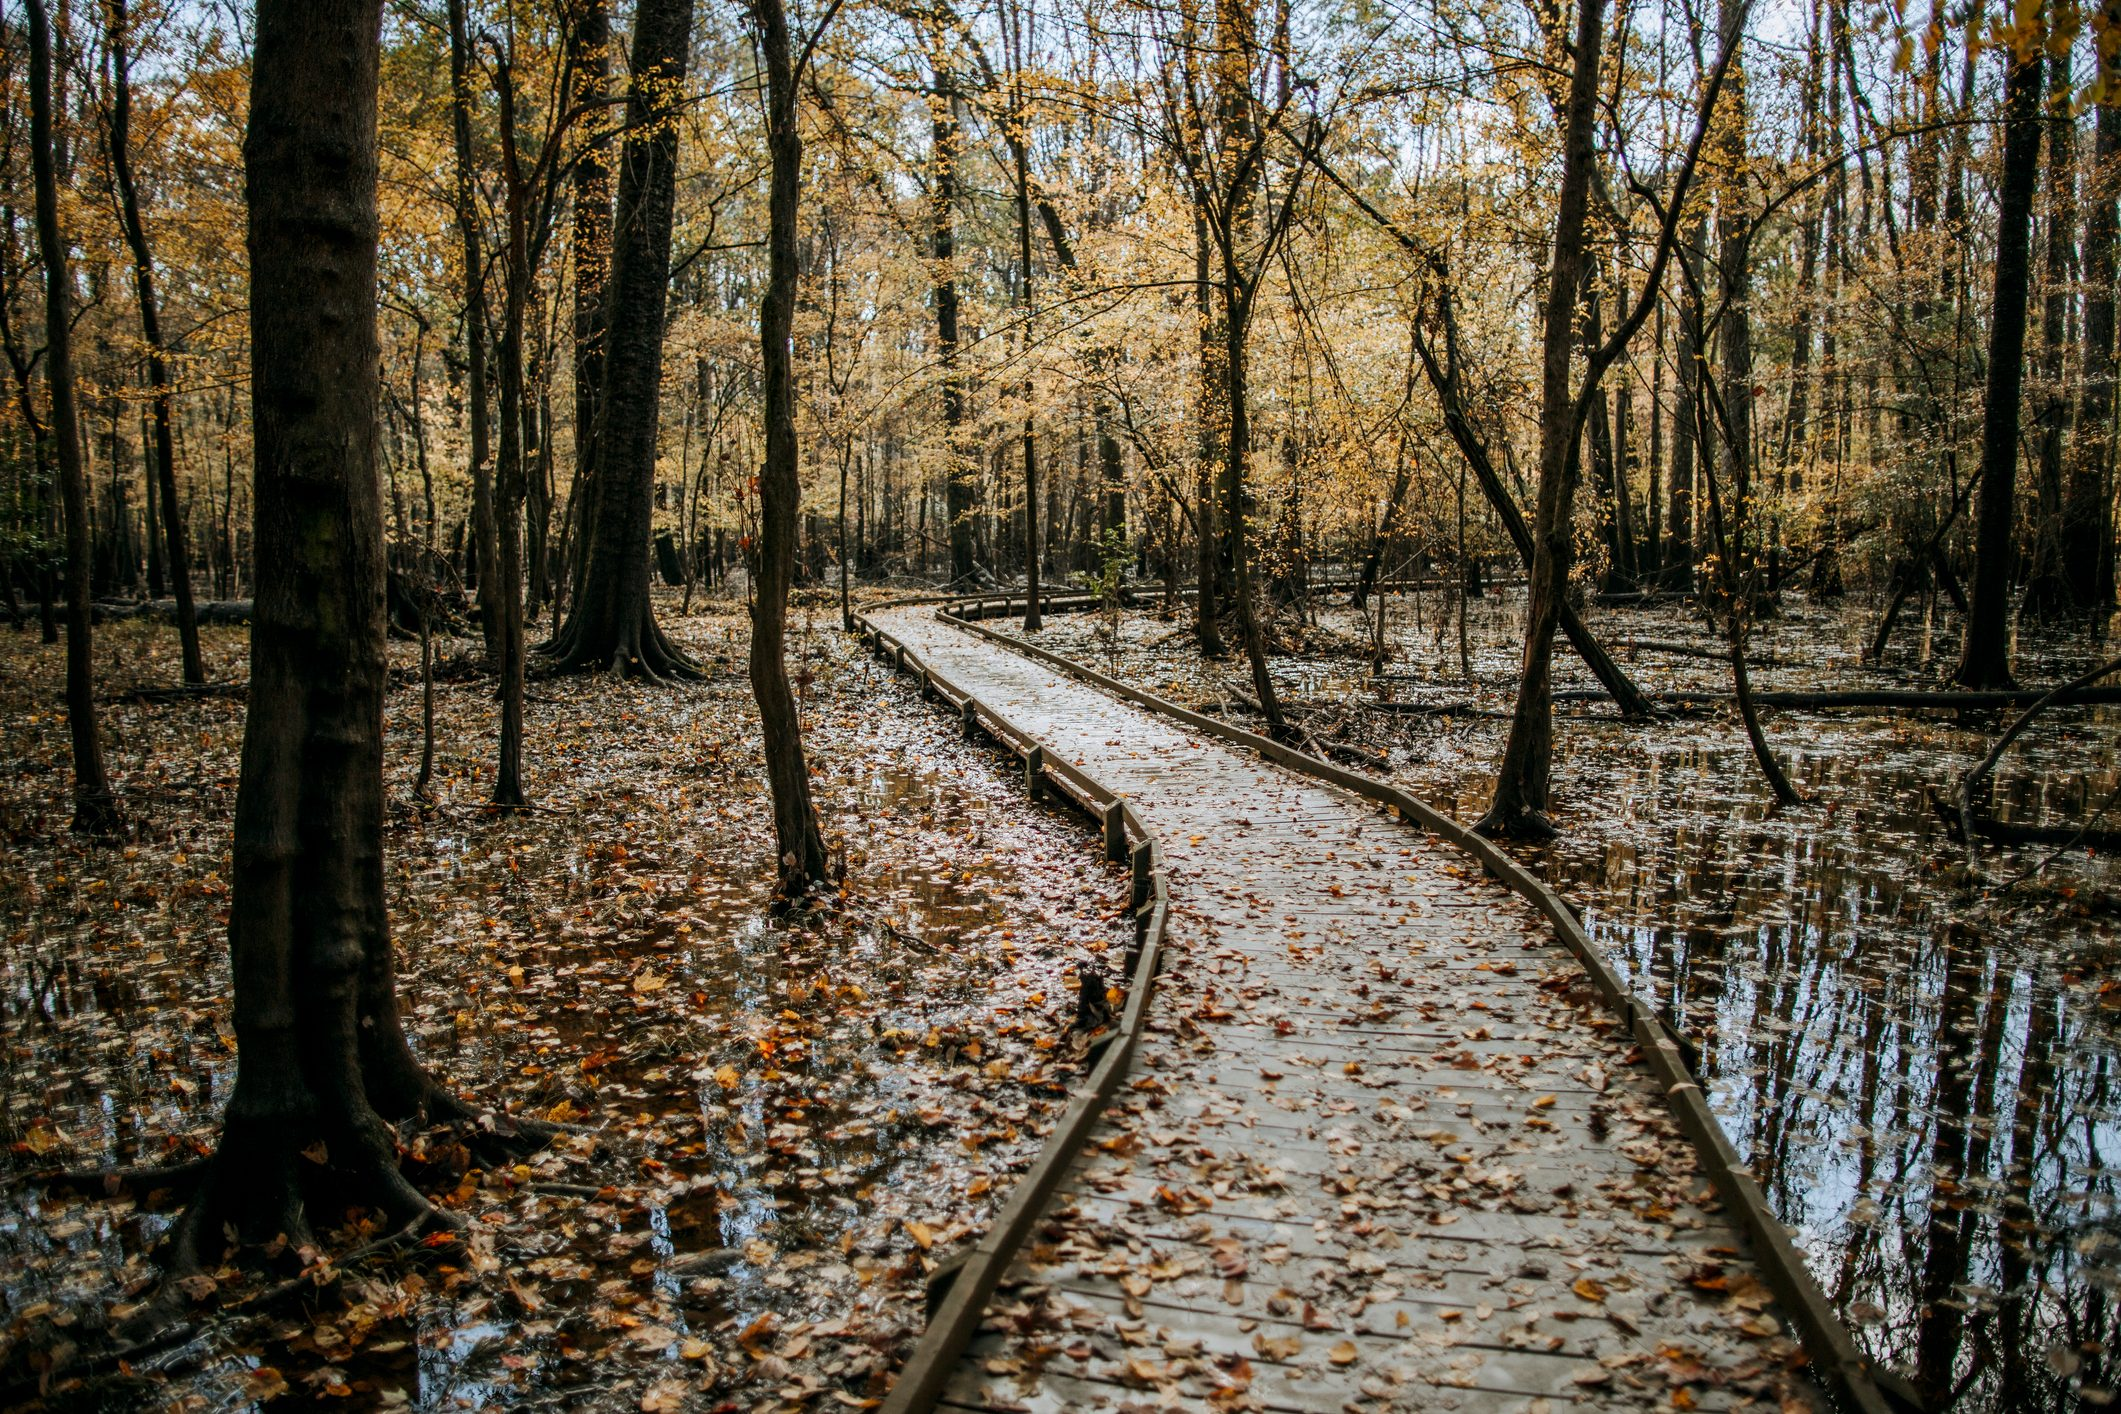 A boardwalk through the swamps of Congaree National Park in the fall